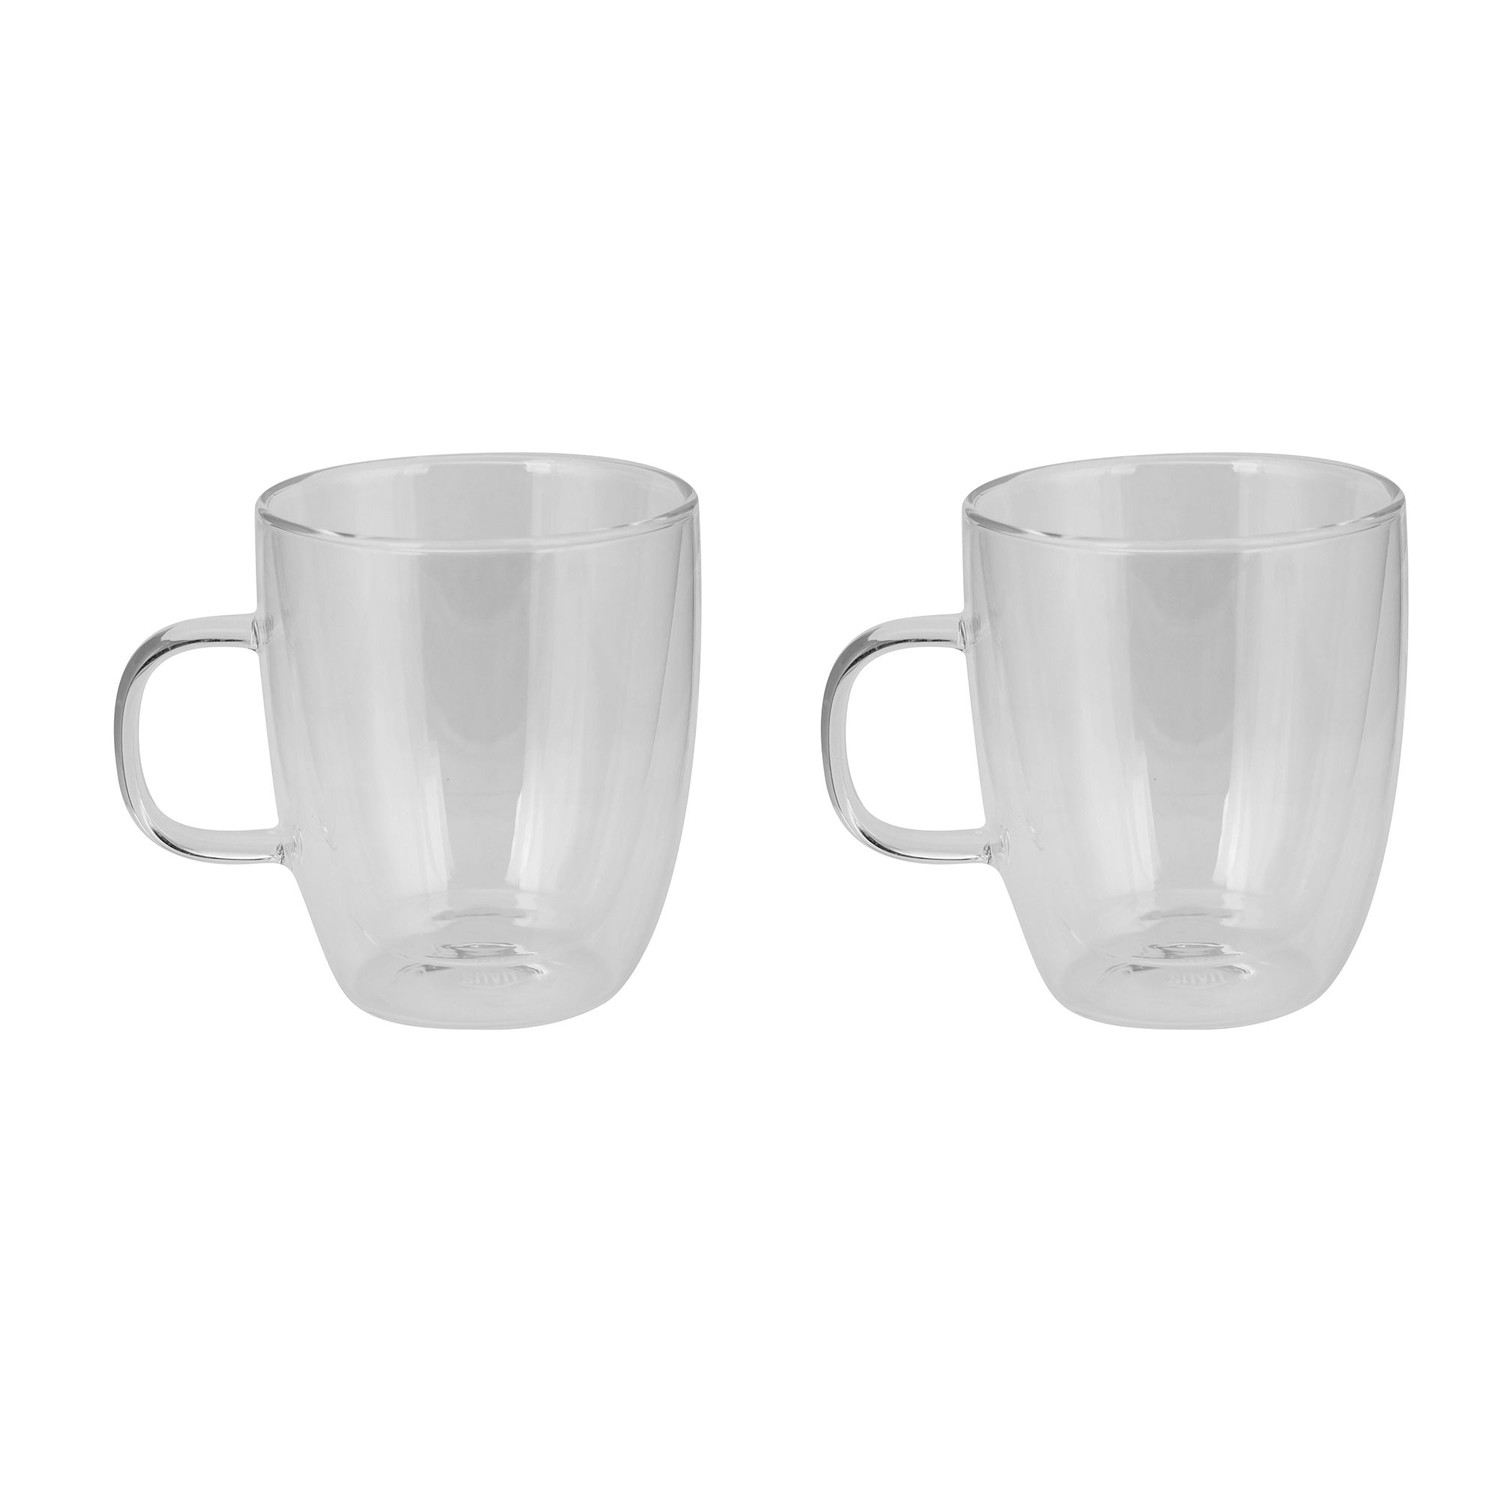 Large Coffee Mug Sets Large Glass Coffee Cup Set Of 2 Haus By Kalorik